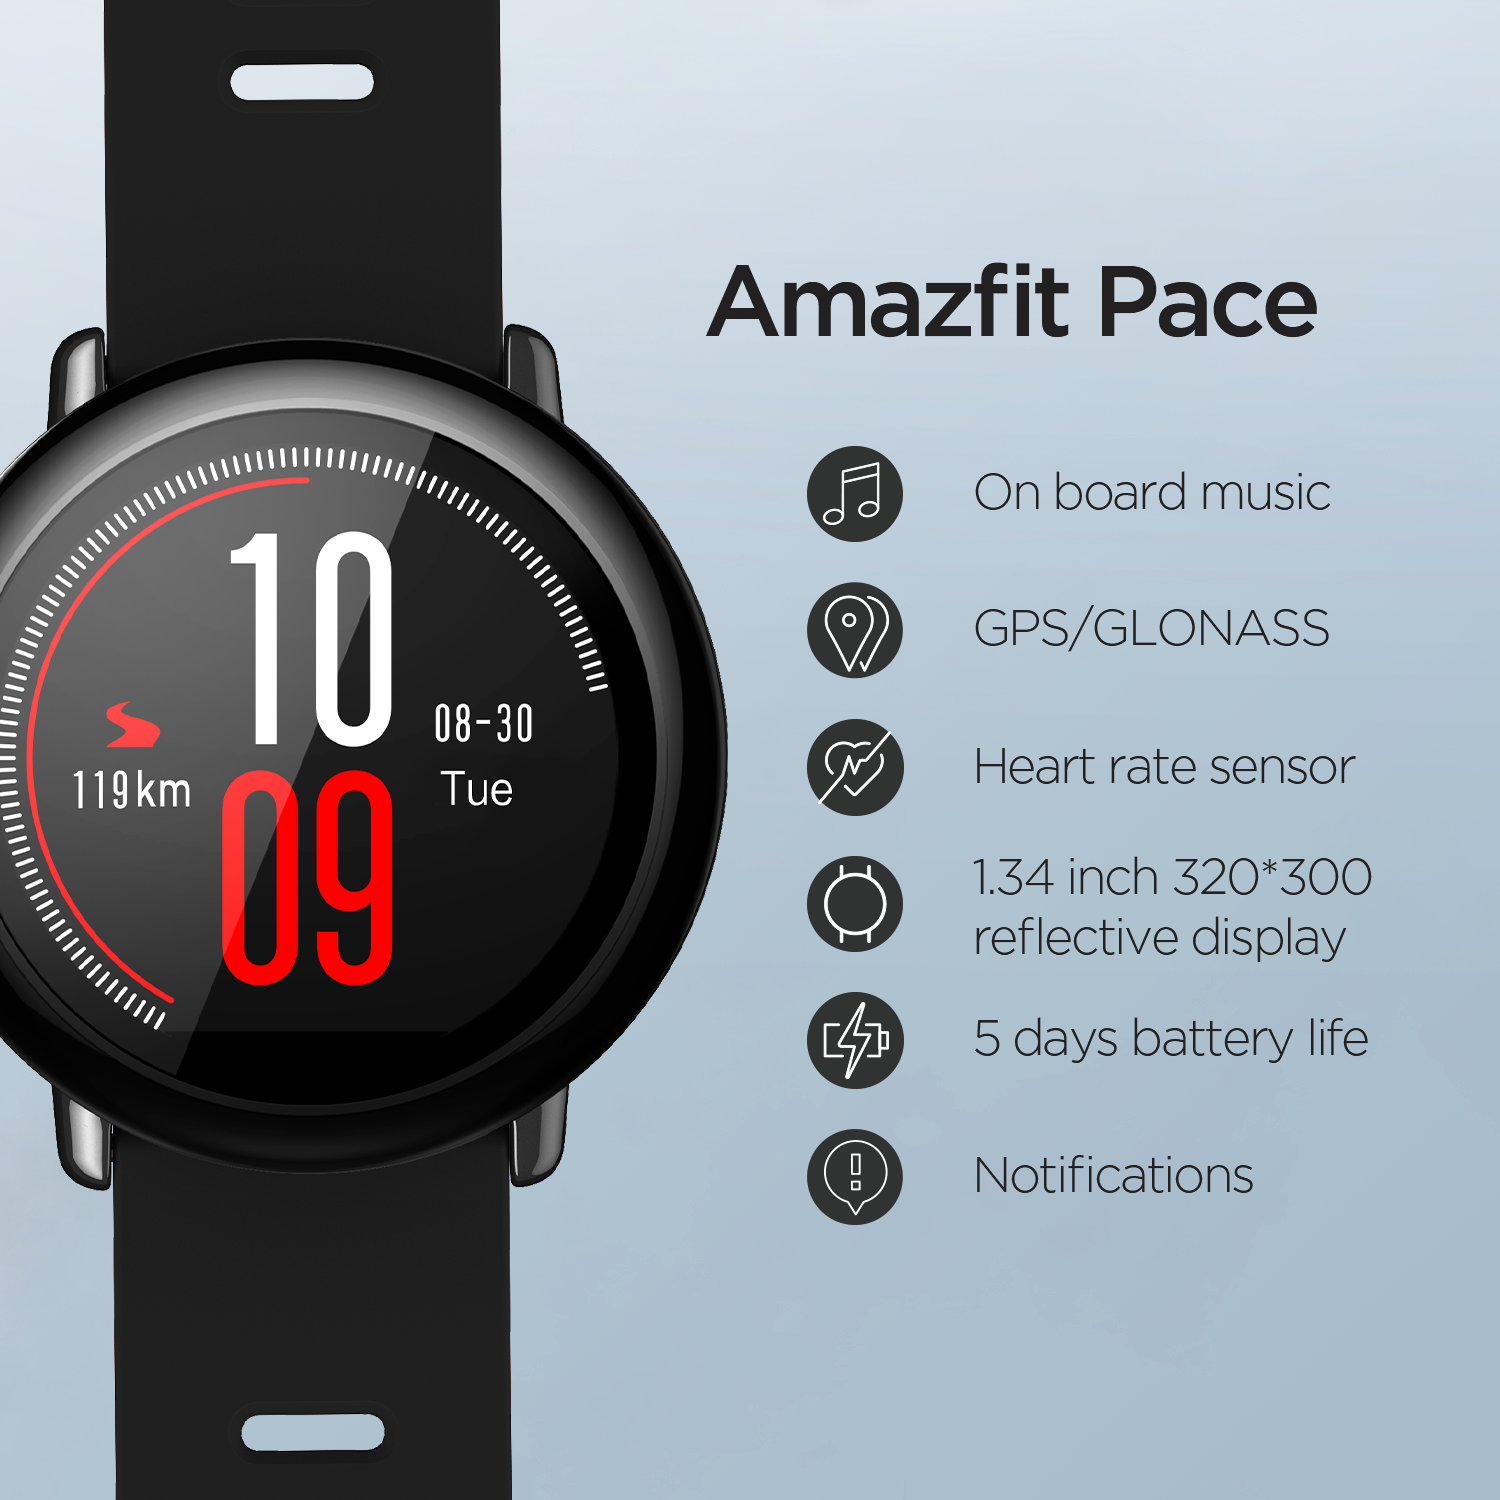 [Ship From Russia]Русский Amazfit Pace Smartwatch Smart Watch Bluetooth Music GPS Information Push Heart Rate For redmi 7-1